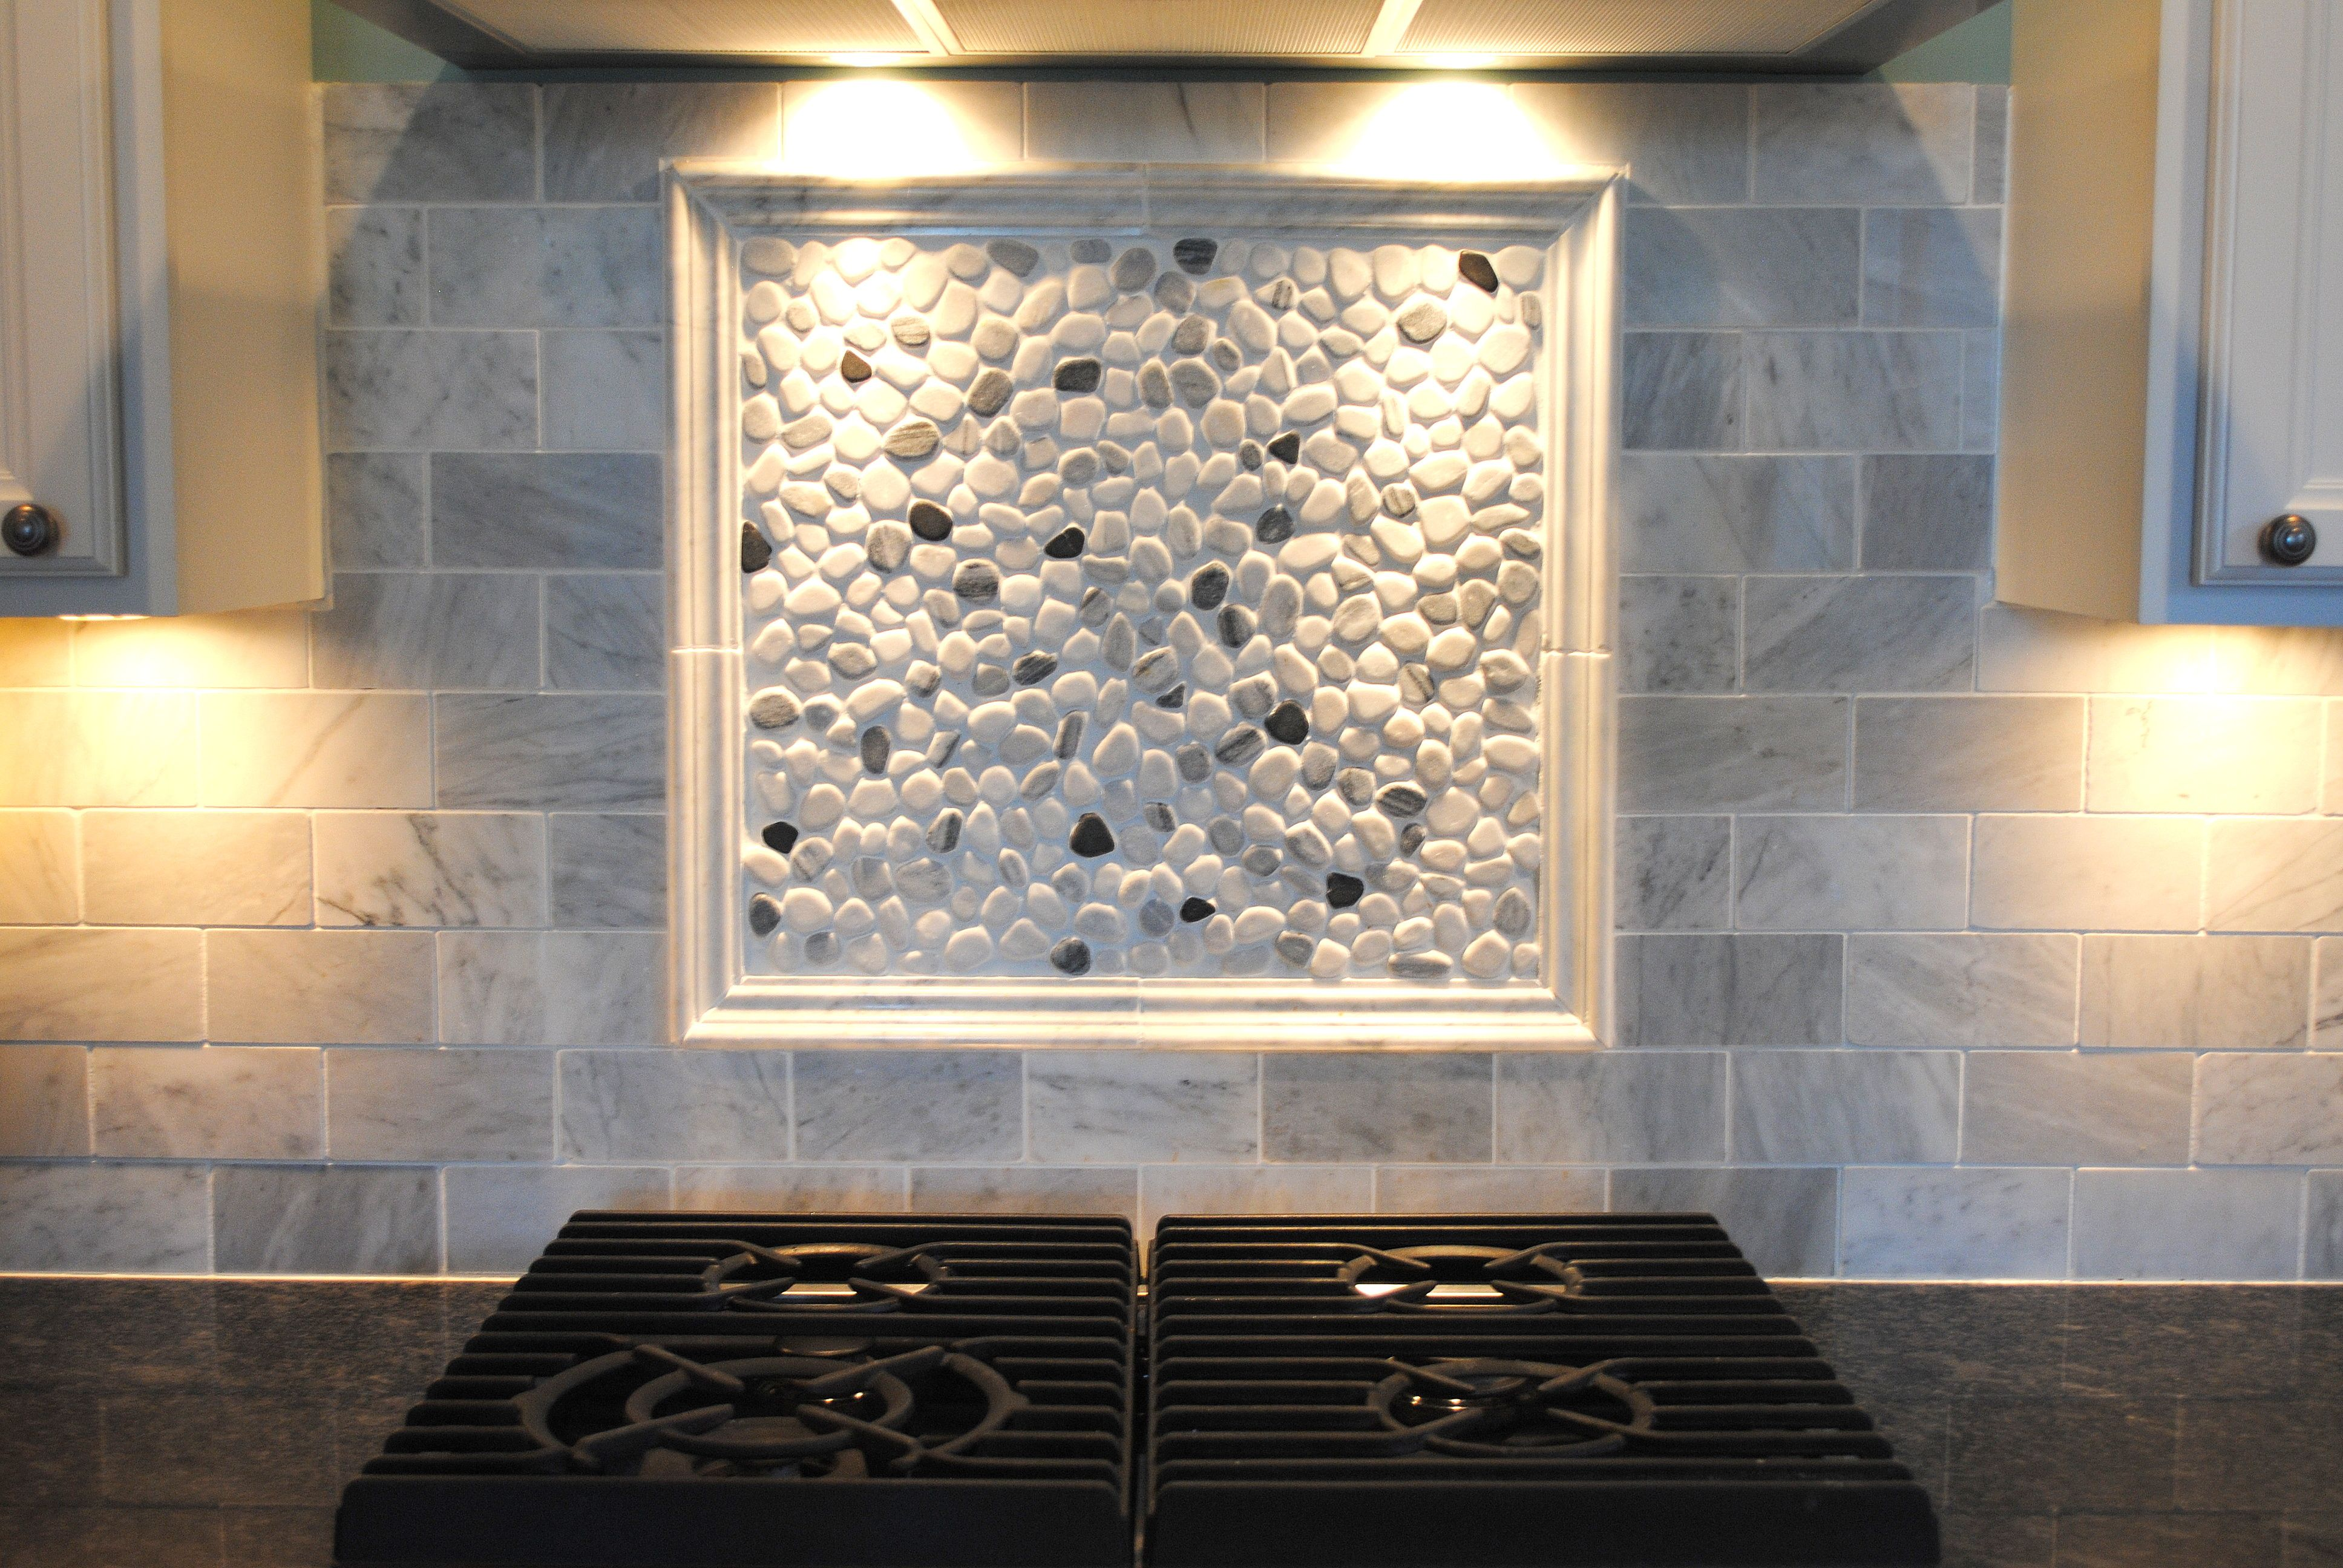 White Washed Tiles Backsplash With A Frame Containing White And